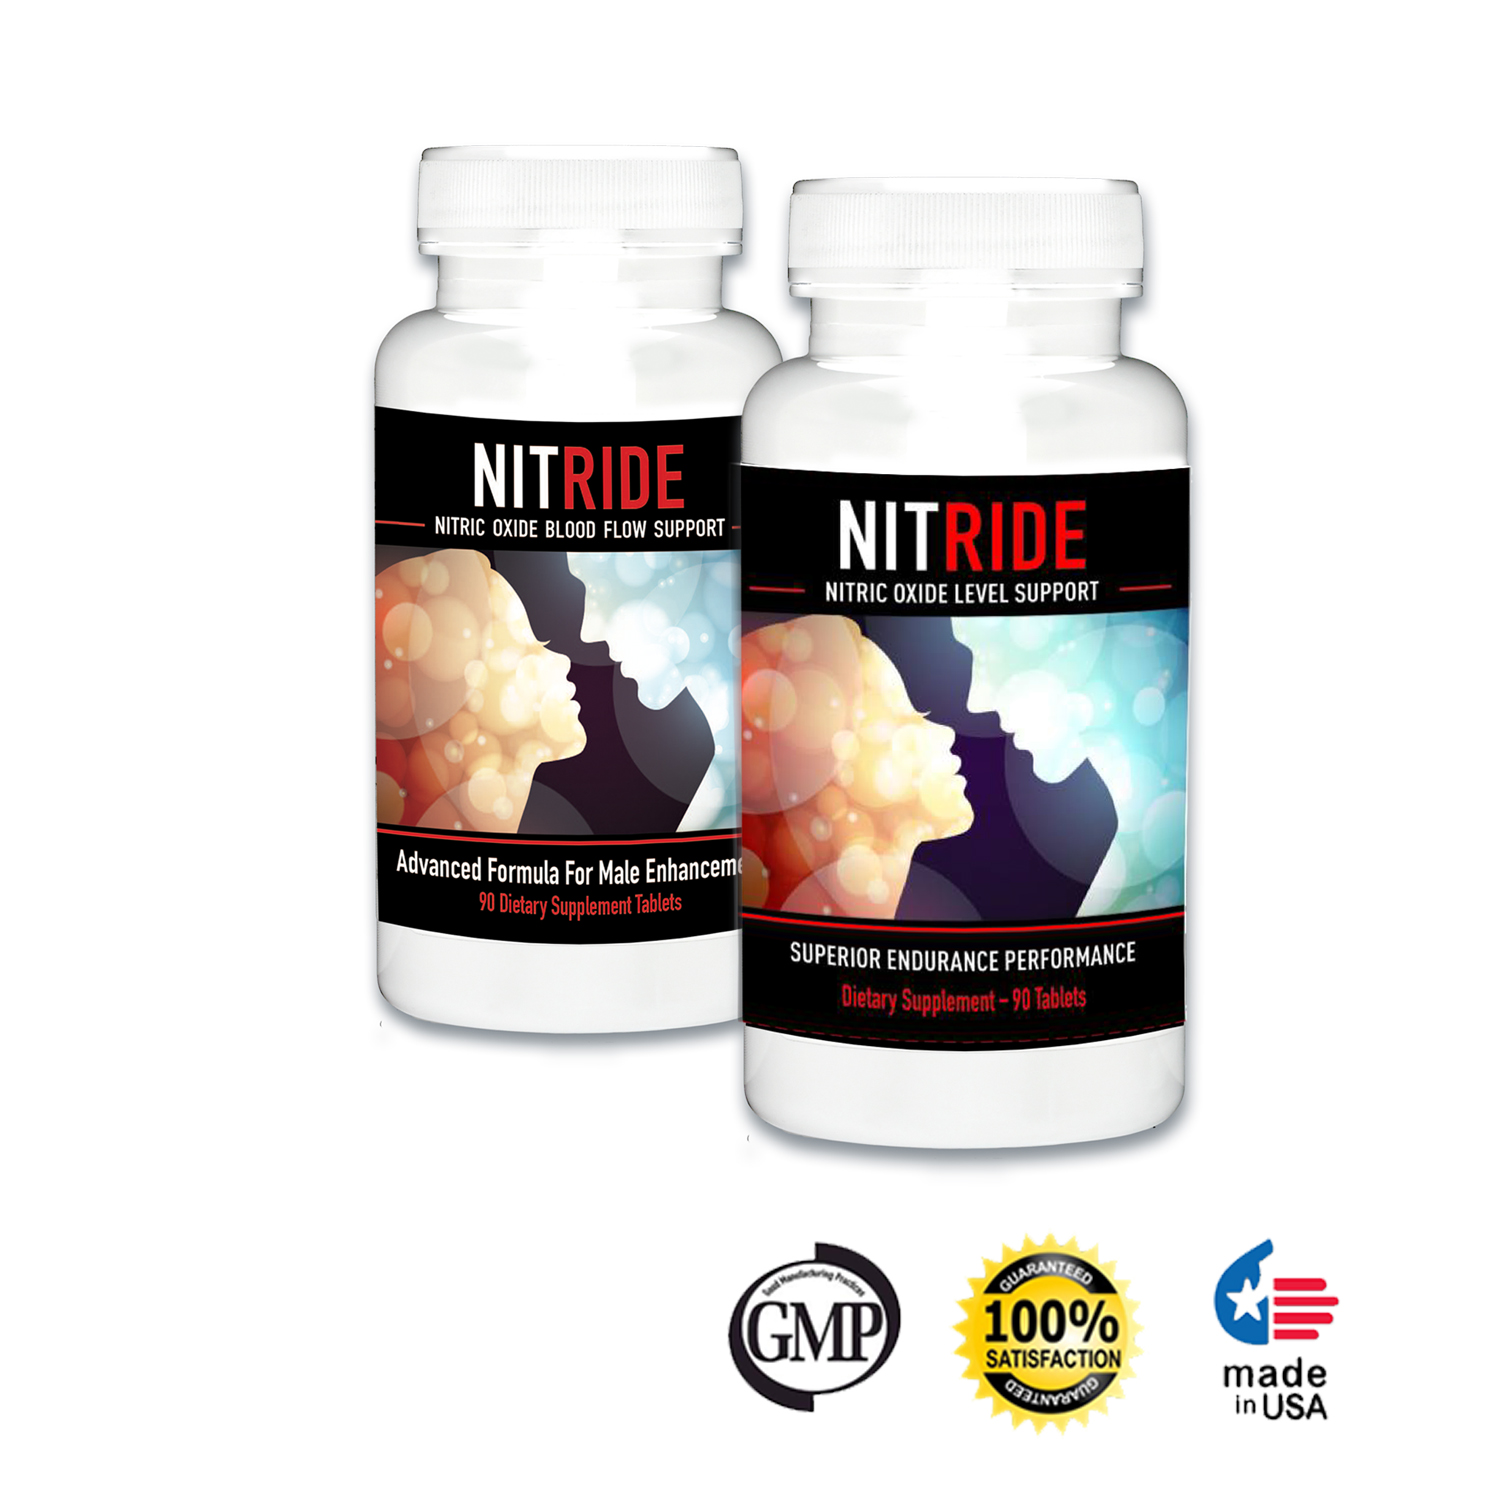 Nitride Premium Nitric Oxide Booster For Increased Blood Flow, Stamina, Stimulate Libido & Ability, Men, Push Beyond Former Limits Today (2 Bottles)